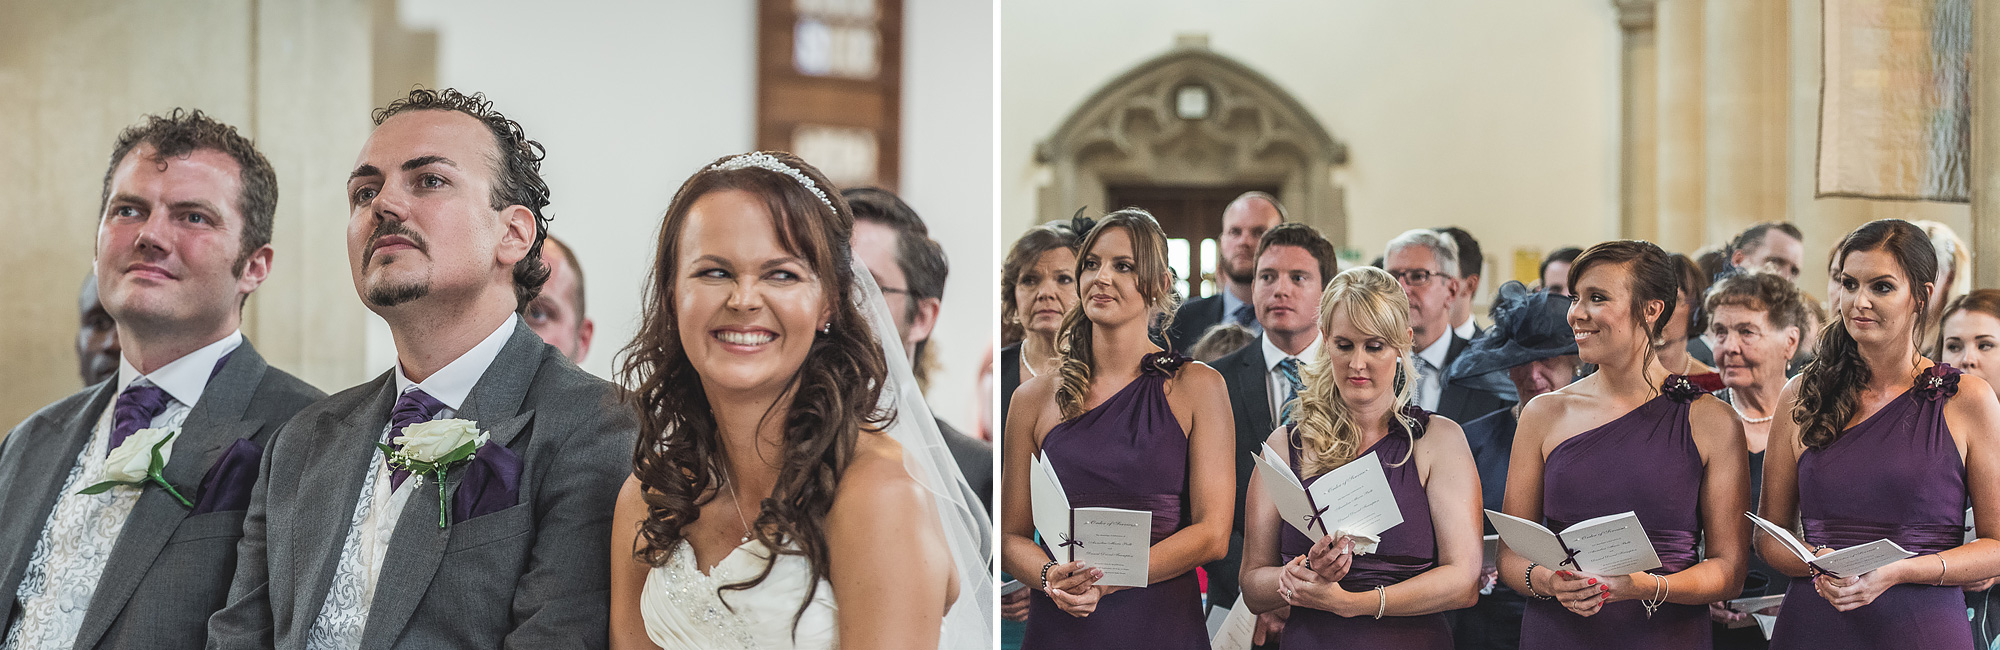 All-Saints-Church-Lisa-Lee-Documentary-Wedding-Photography-26.jpg